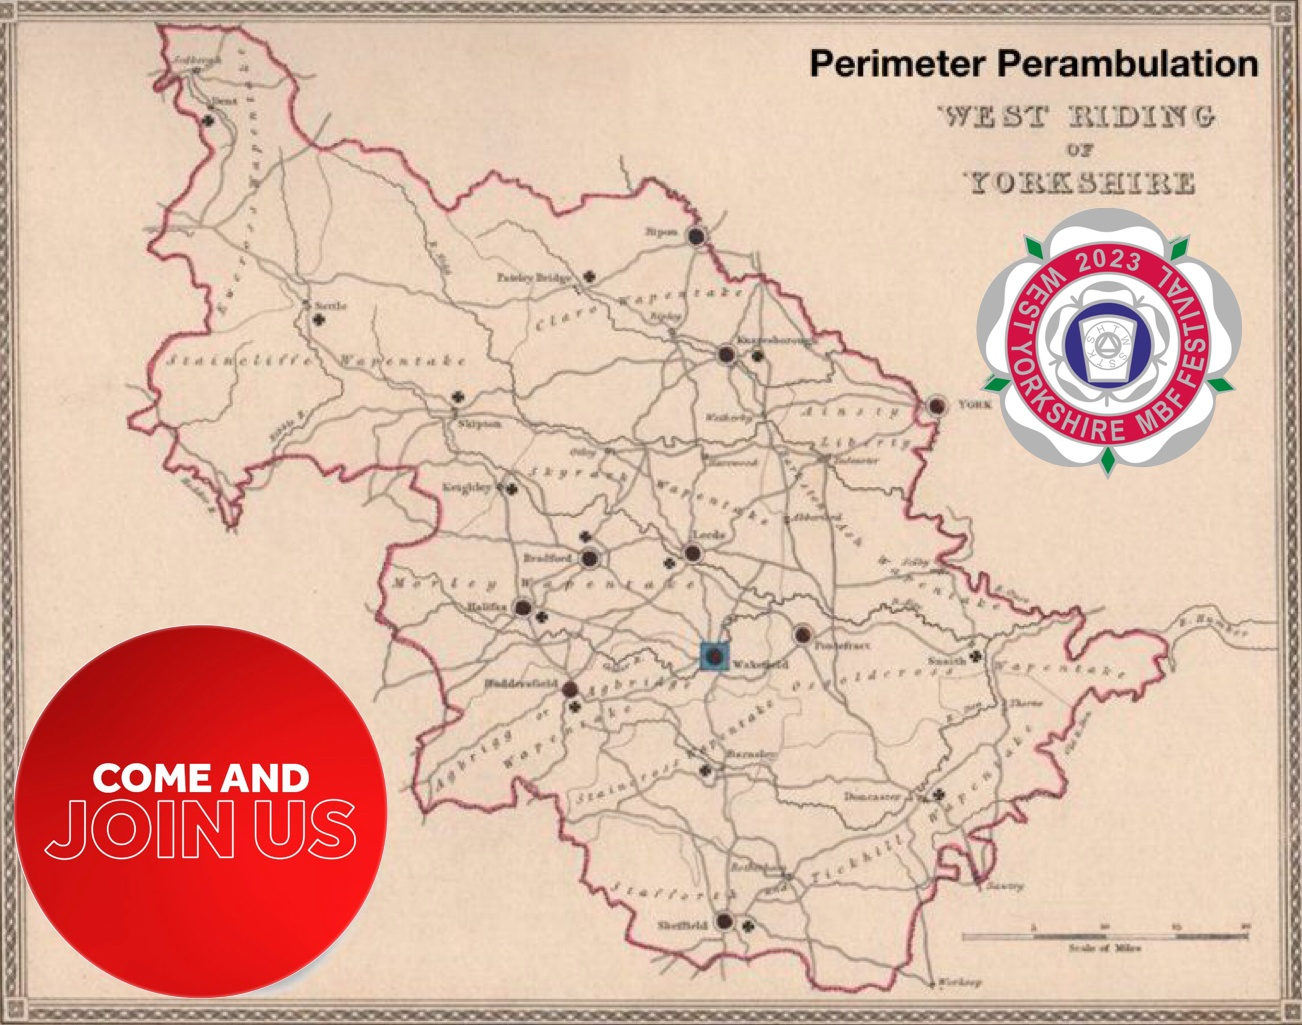 Perimeter Perambulation Route and Joining Instructions